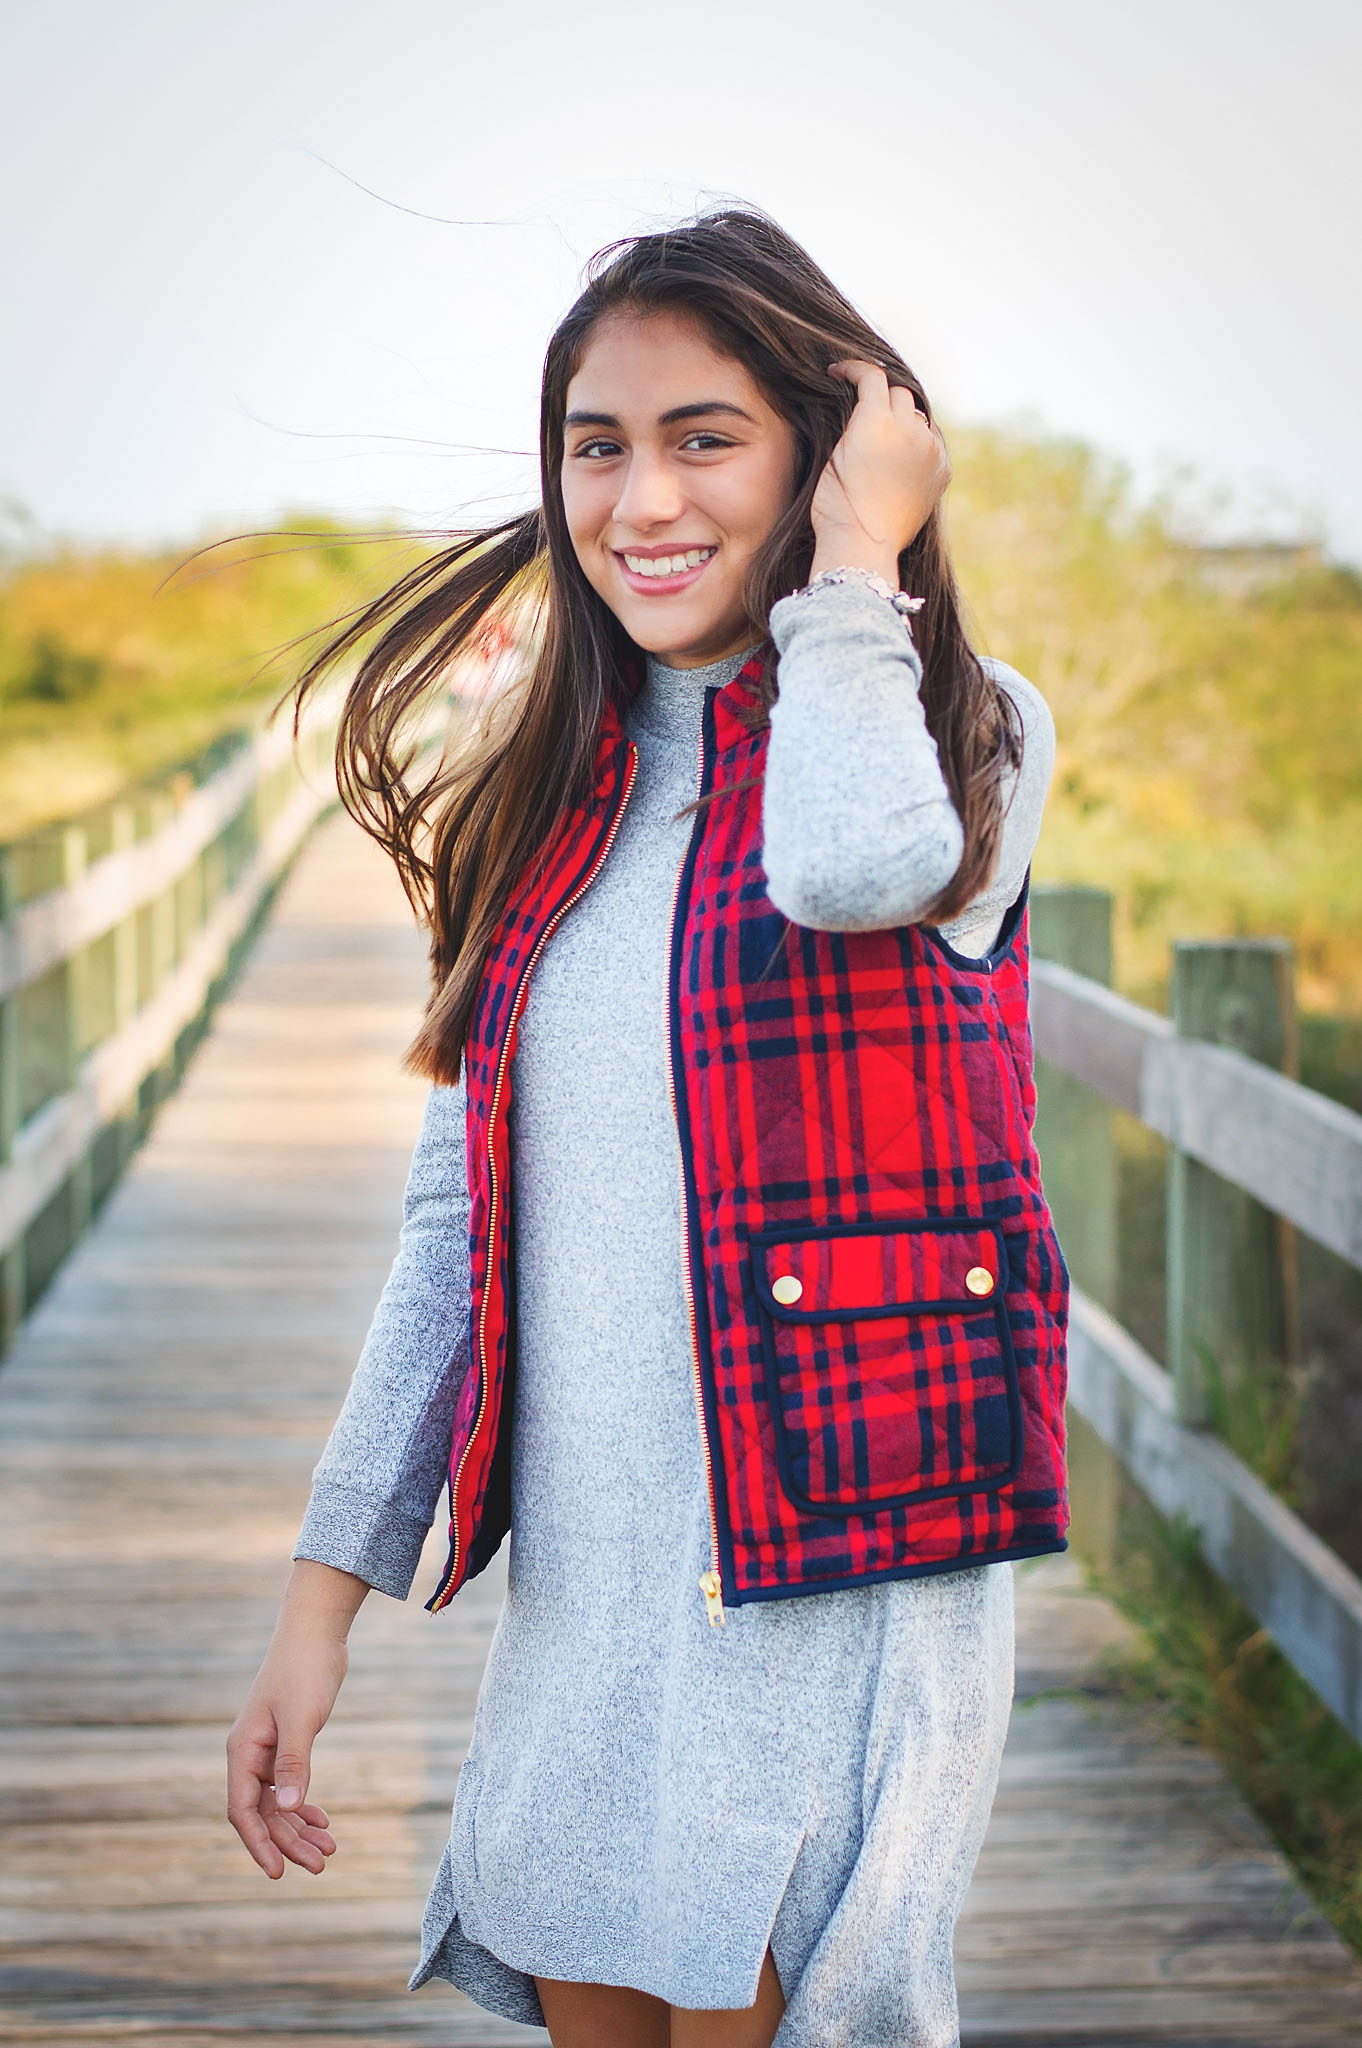 A simple solid dress is taken to a new level with the fun texture and bold color of the plaid vest.